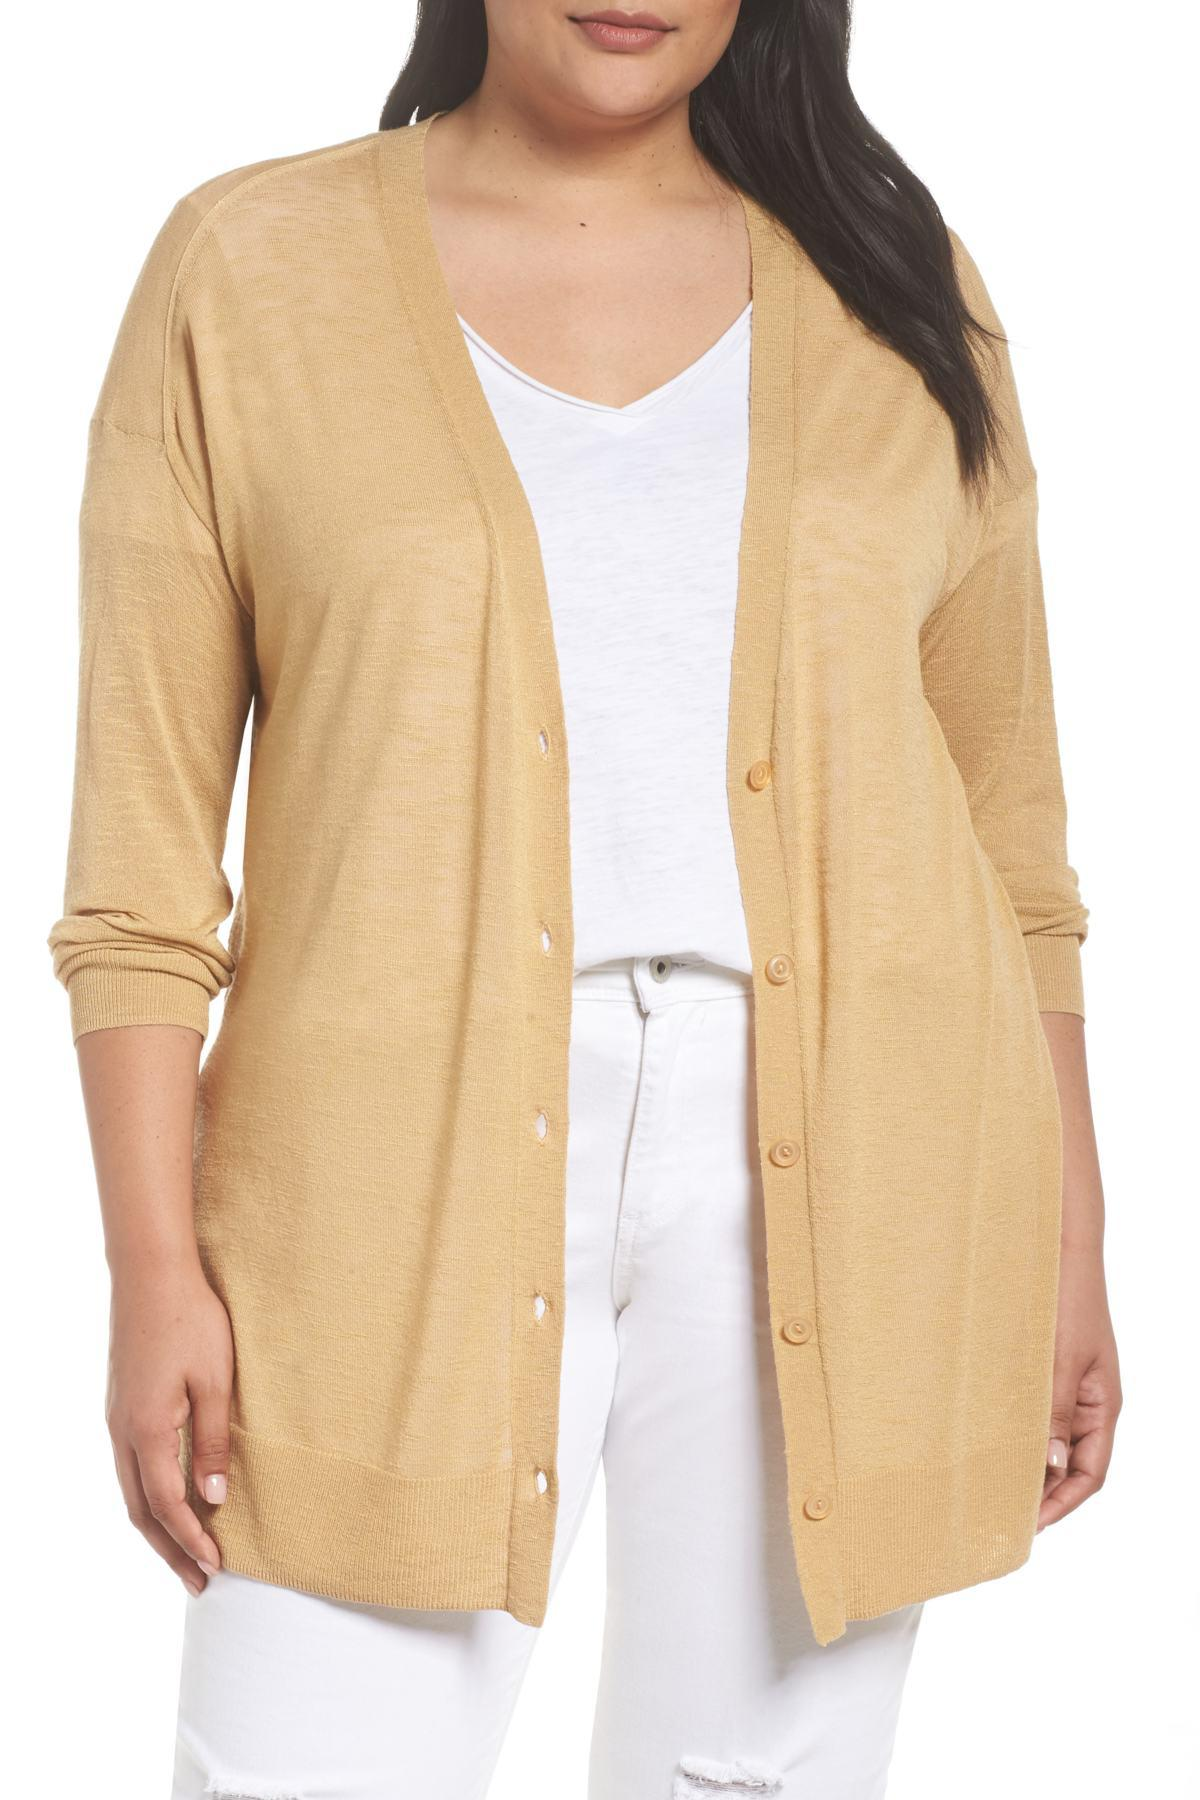 Lyst - Sejour Easy V-neck Cardigan (plus Size) in Natural 8b943ee7c